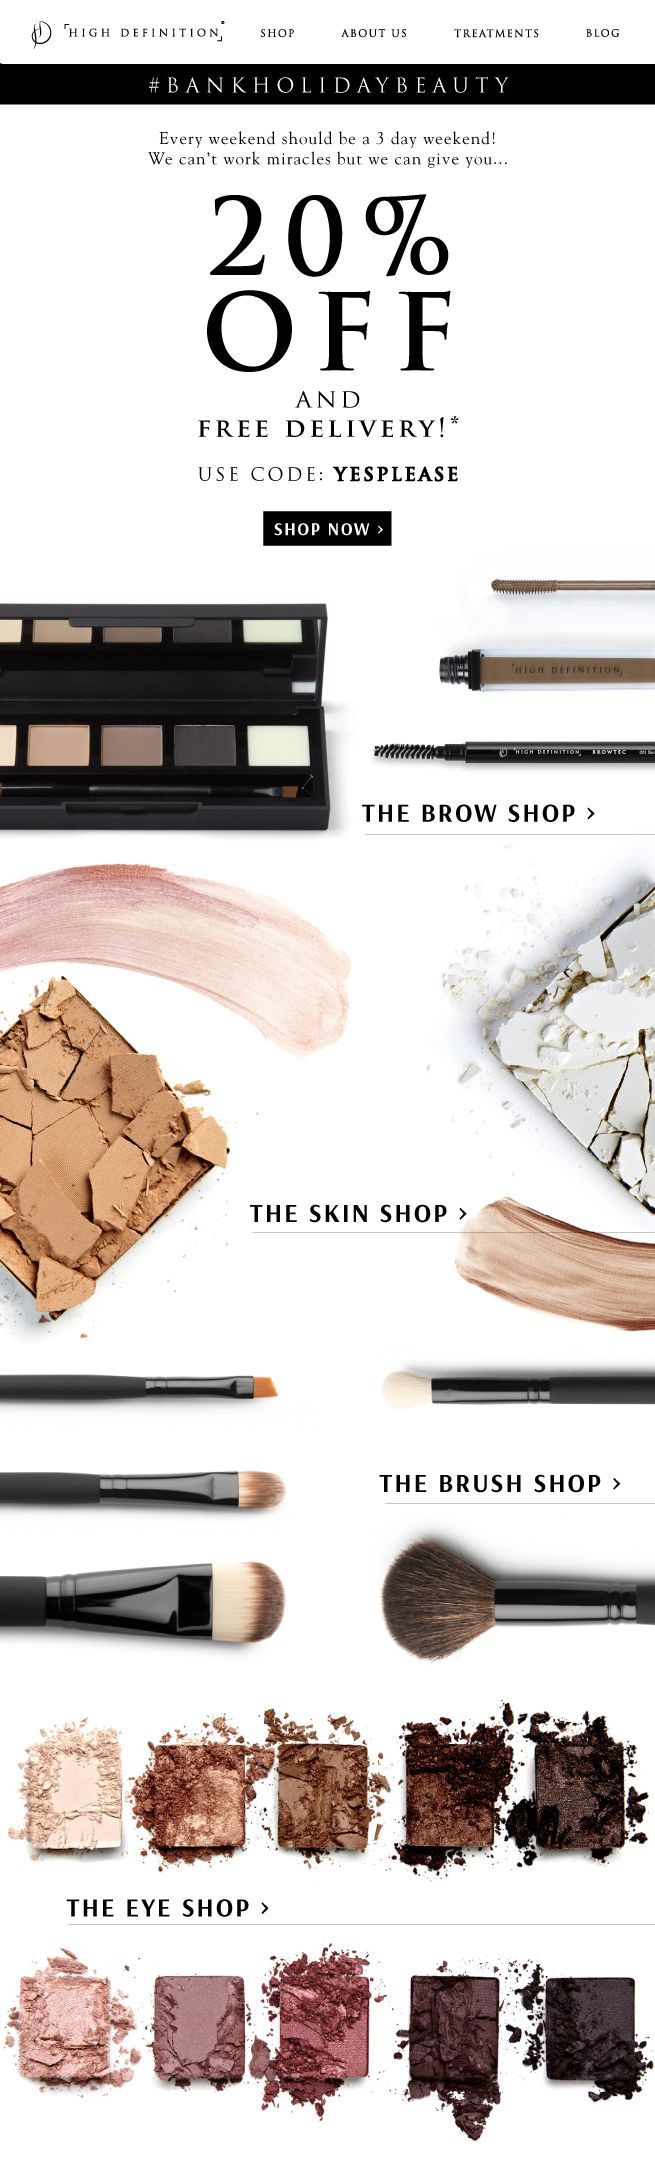 Open for your #BankHolidayBeauty treat... #Email #Design #Offer #Beauty #MakeUp #HighDefinition #Brows #Skin